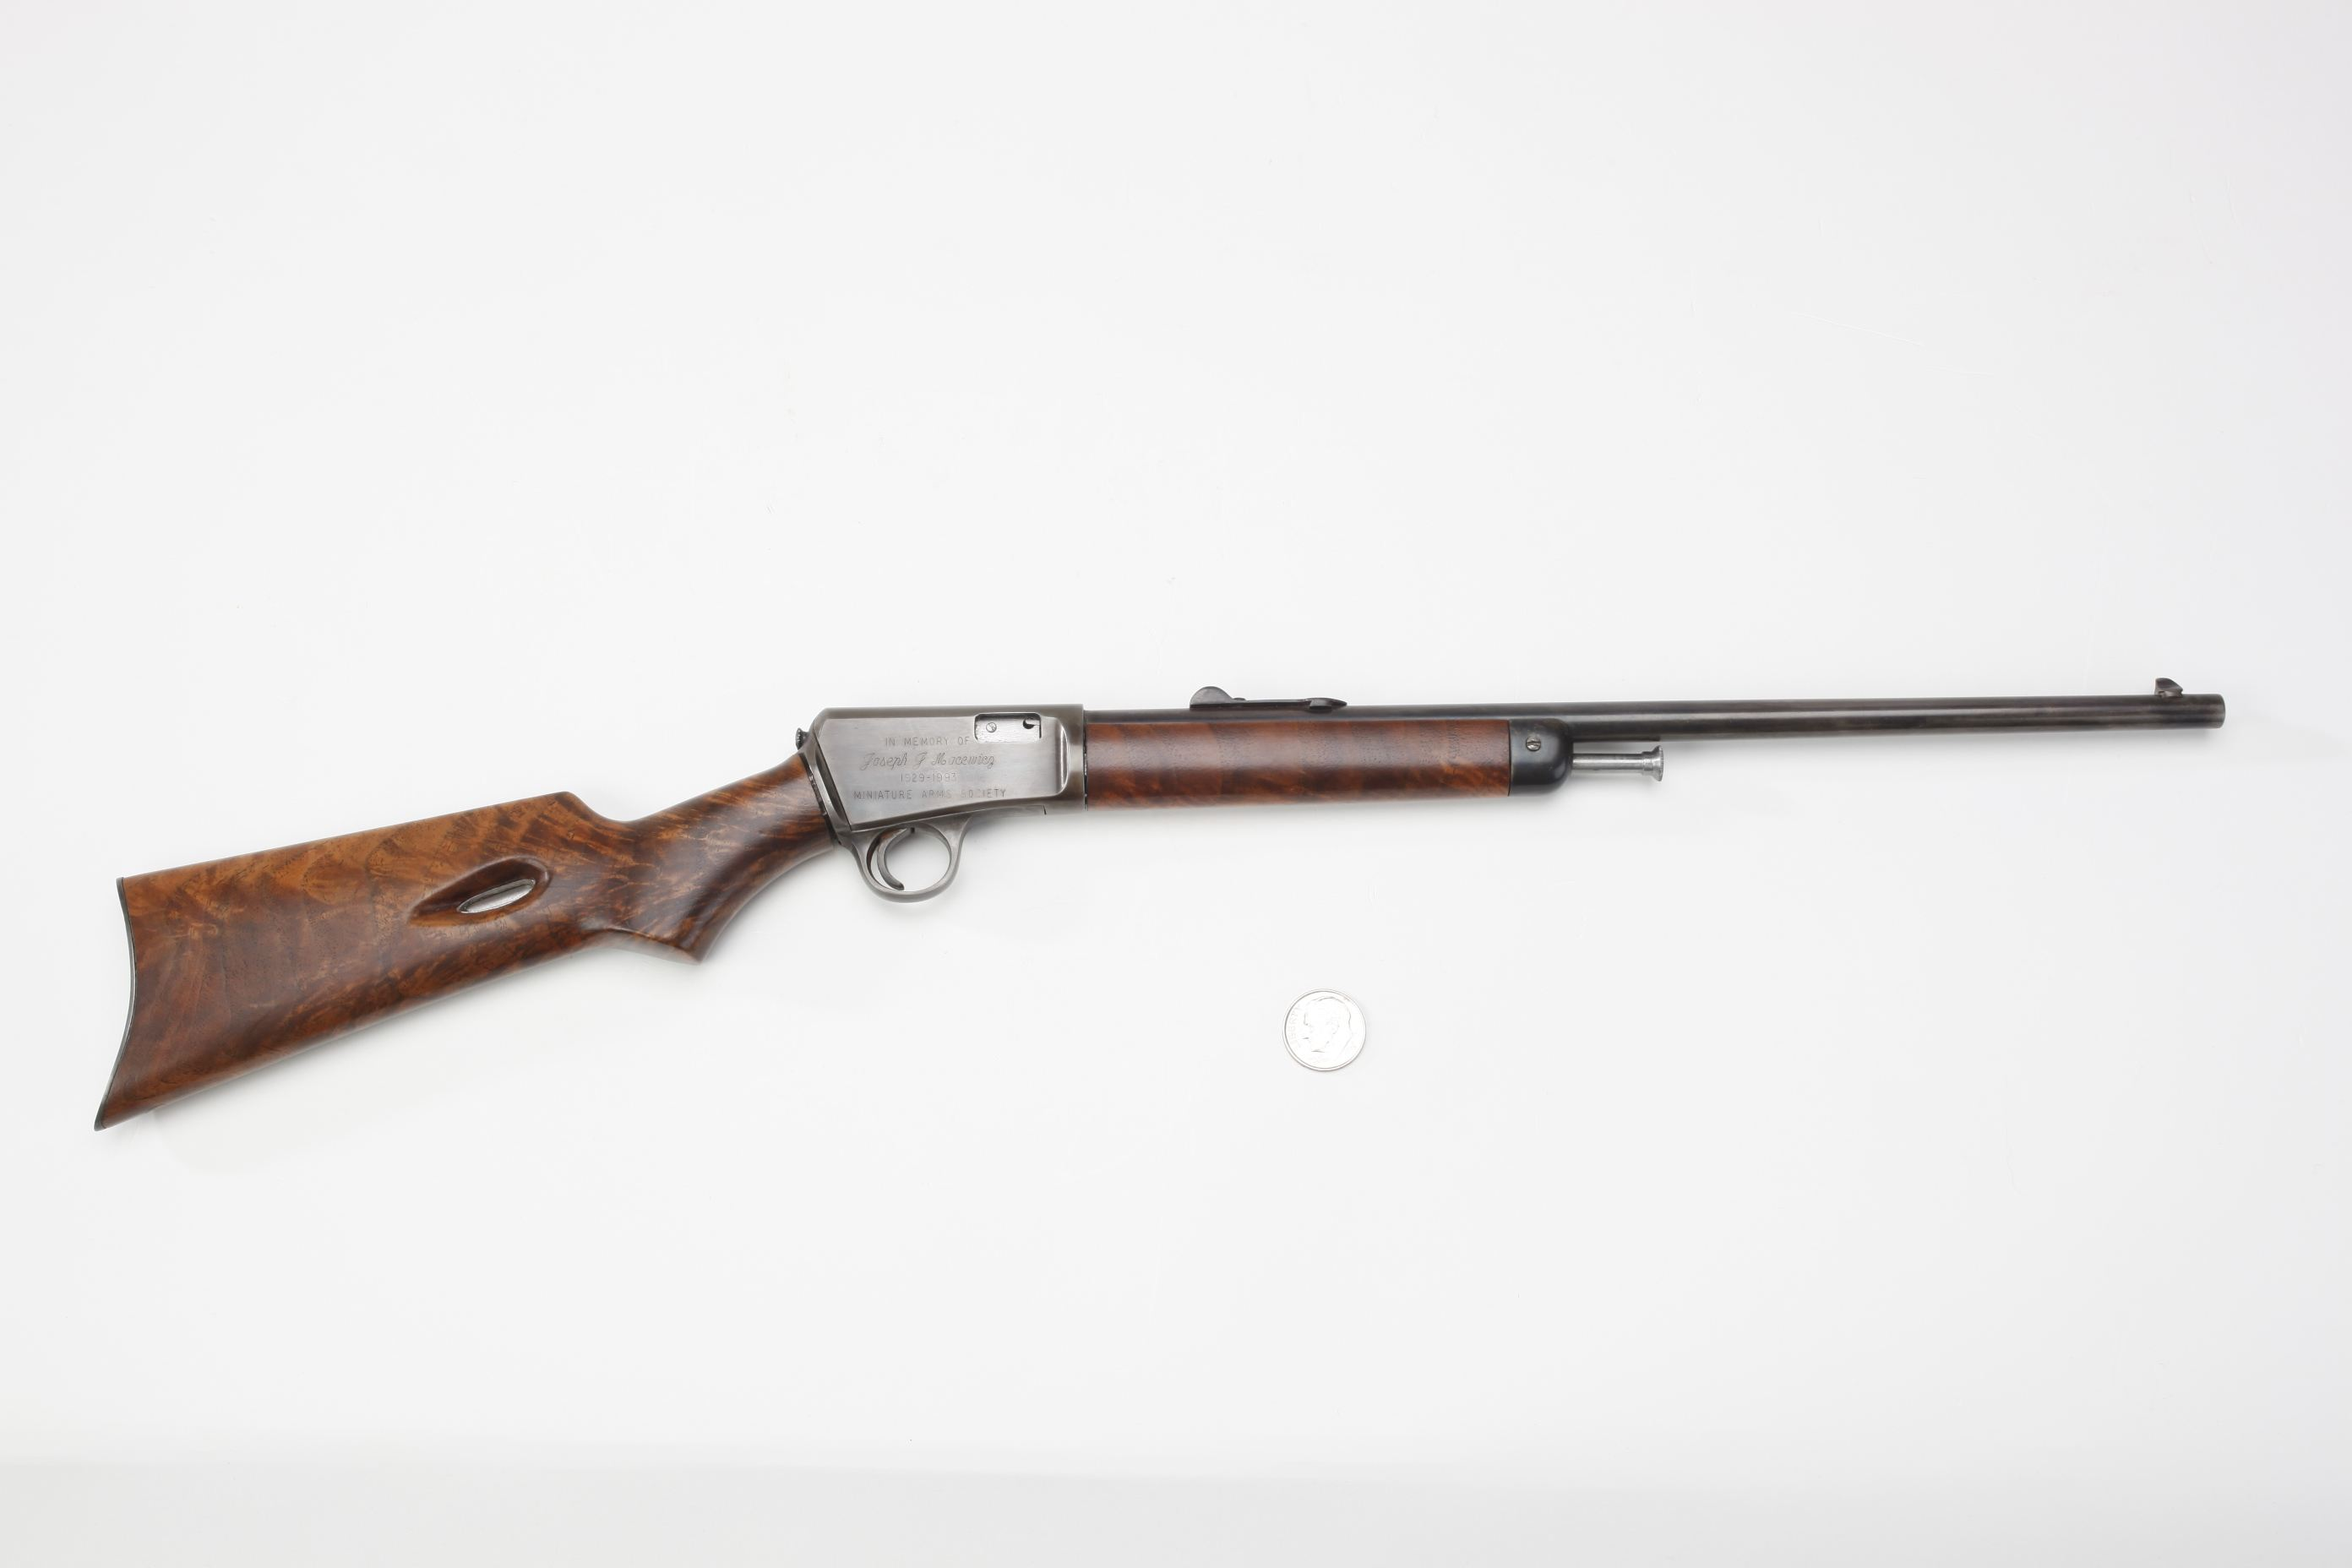 Michael J. Barrett Miniature Winchester Model 1903 Rifle